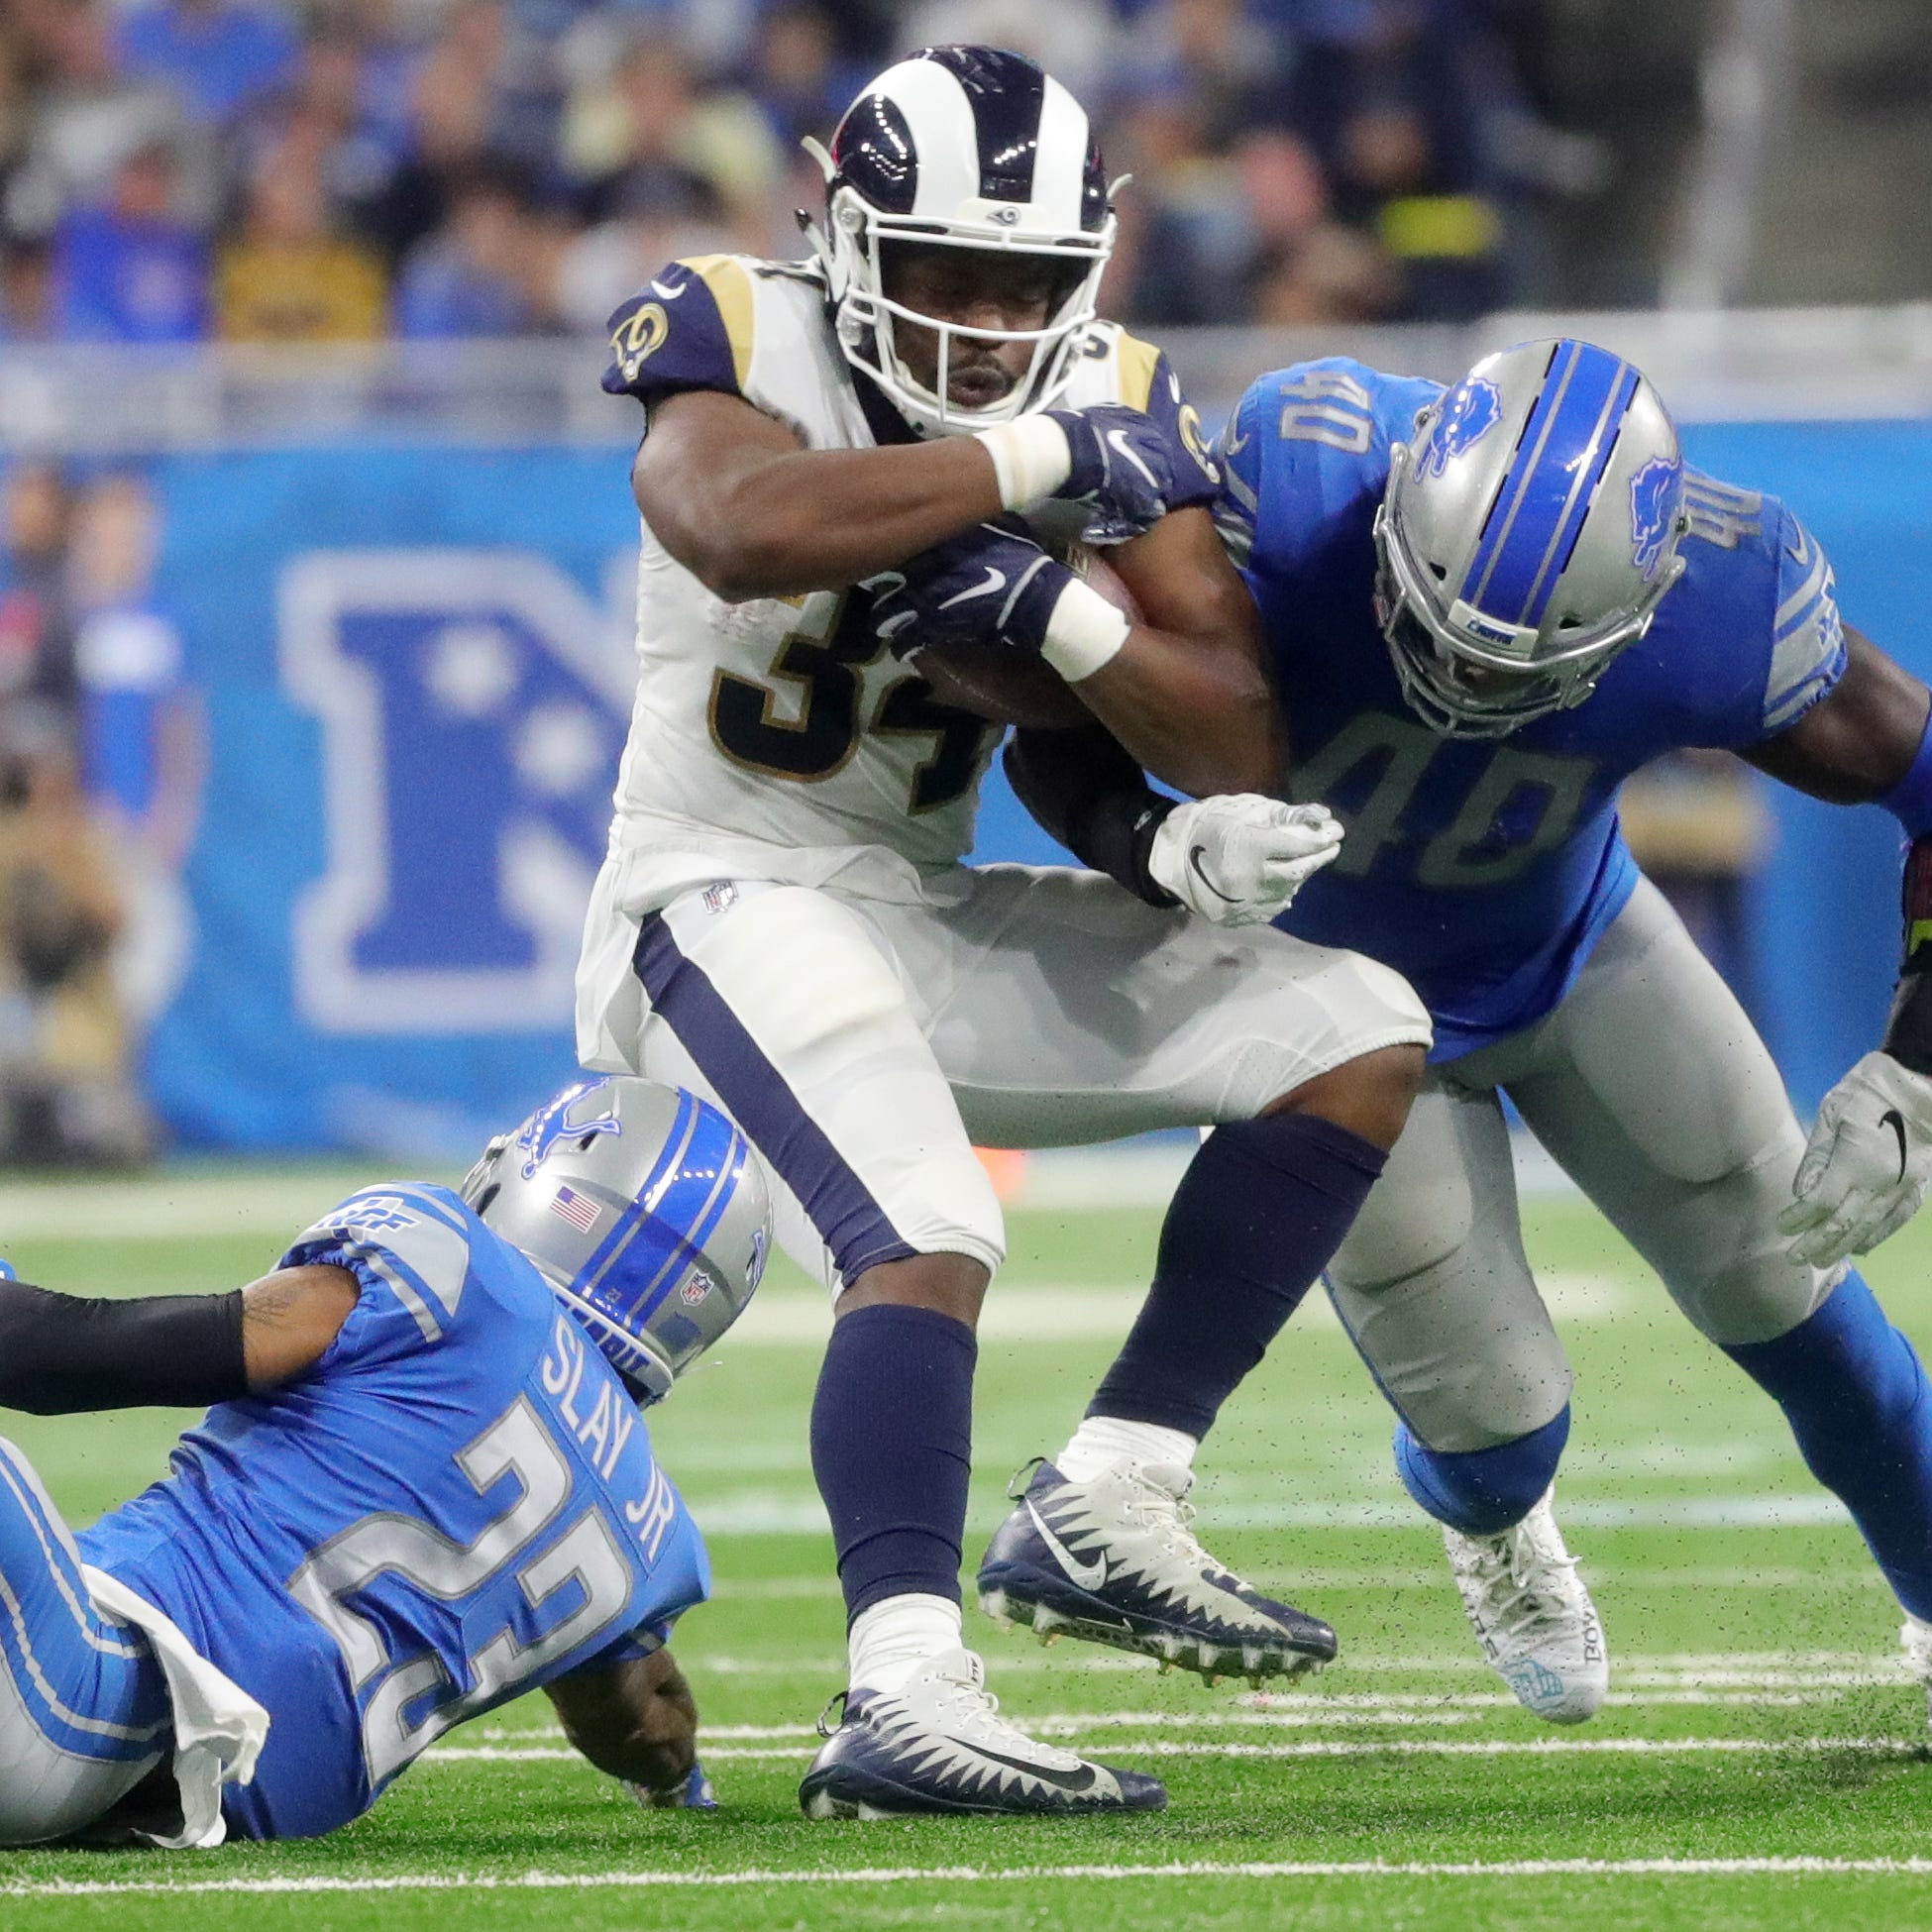 Detroit Lions sign RB Malcolm Brown to offer sheet, per reports